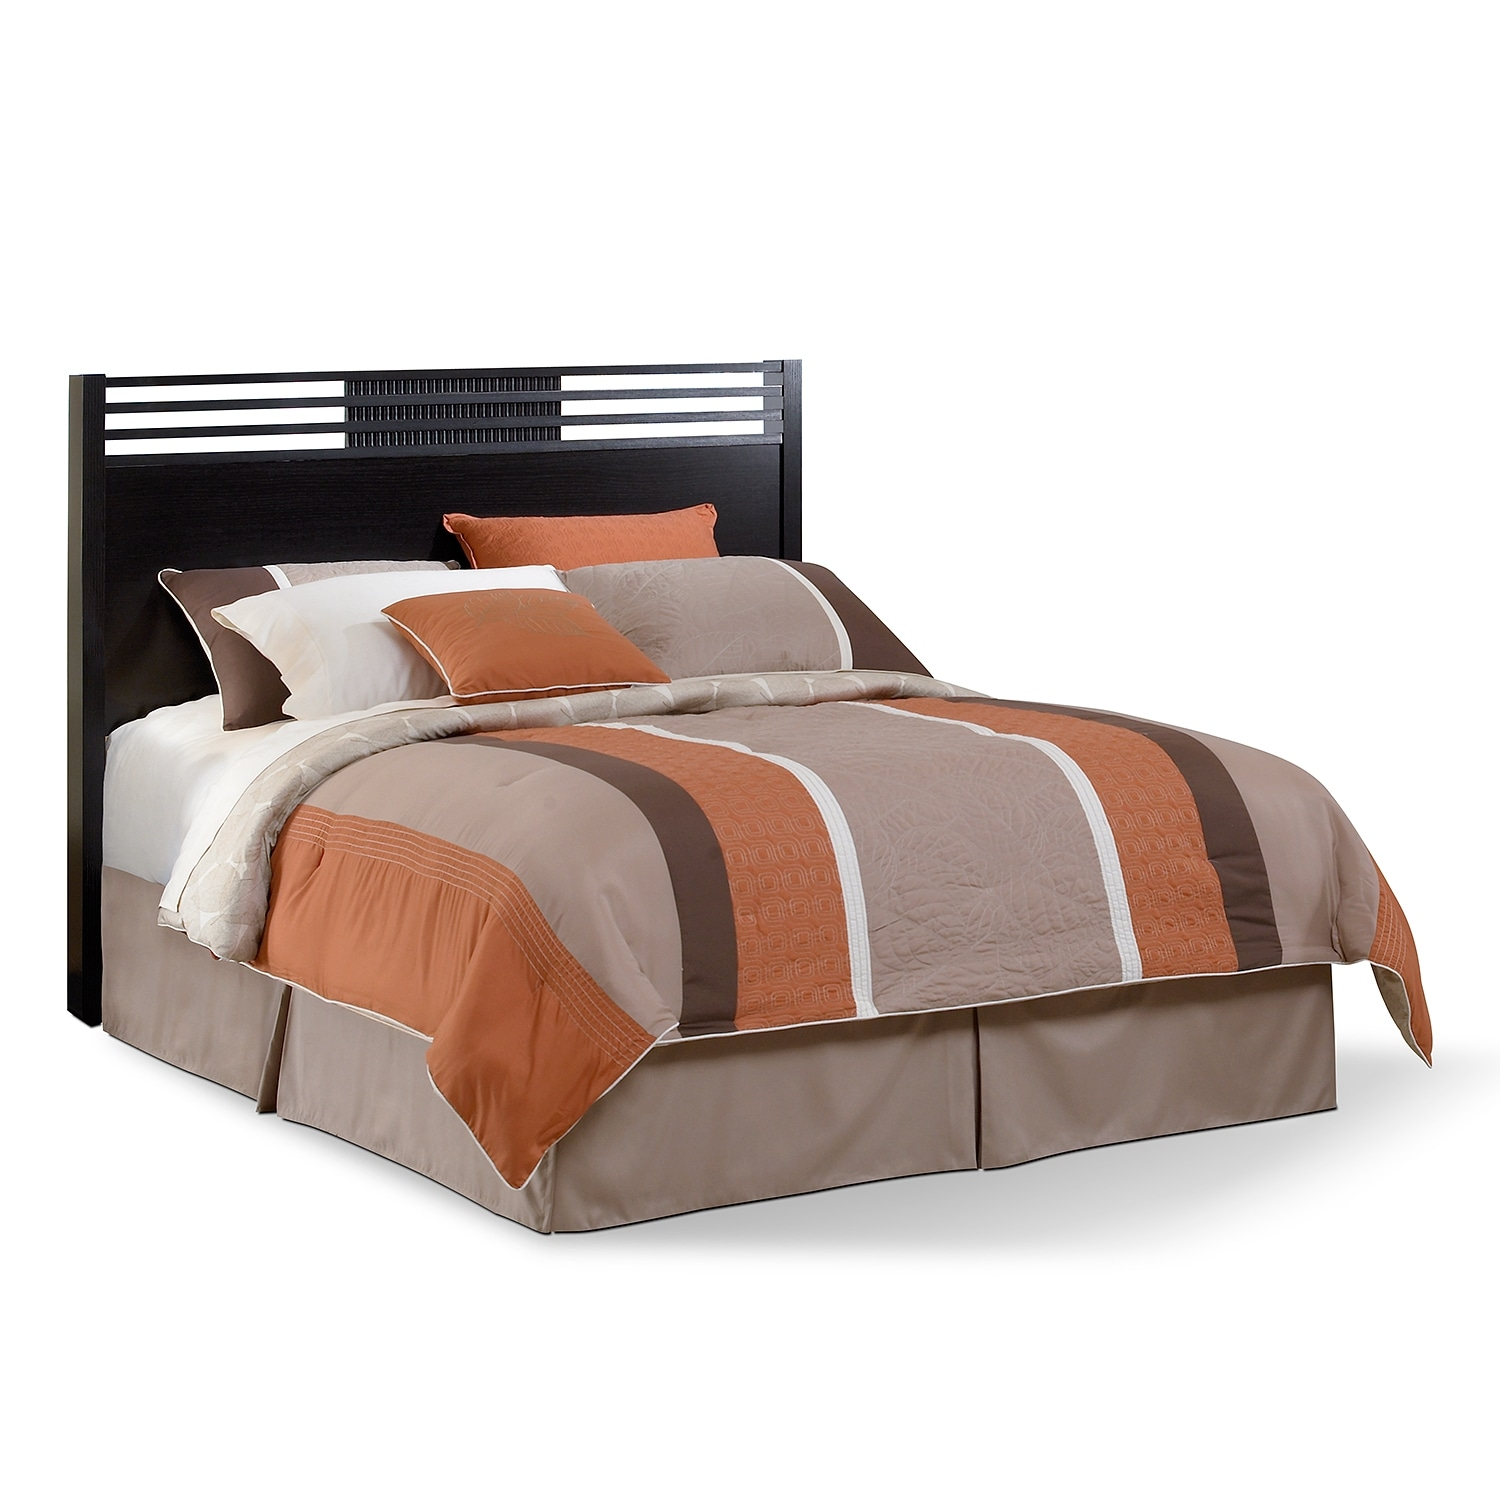 Bedroom Furniture - Bally Espresso Queen Headboard